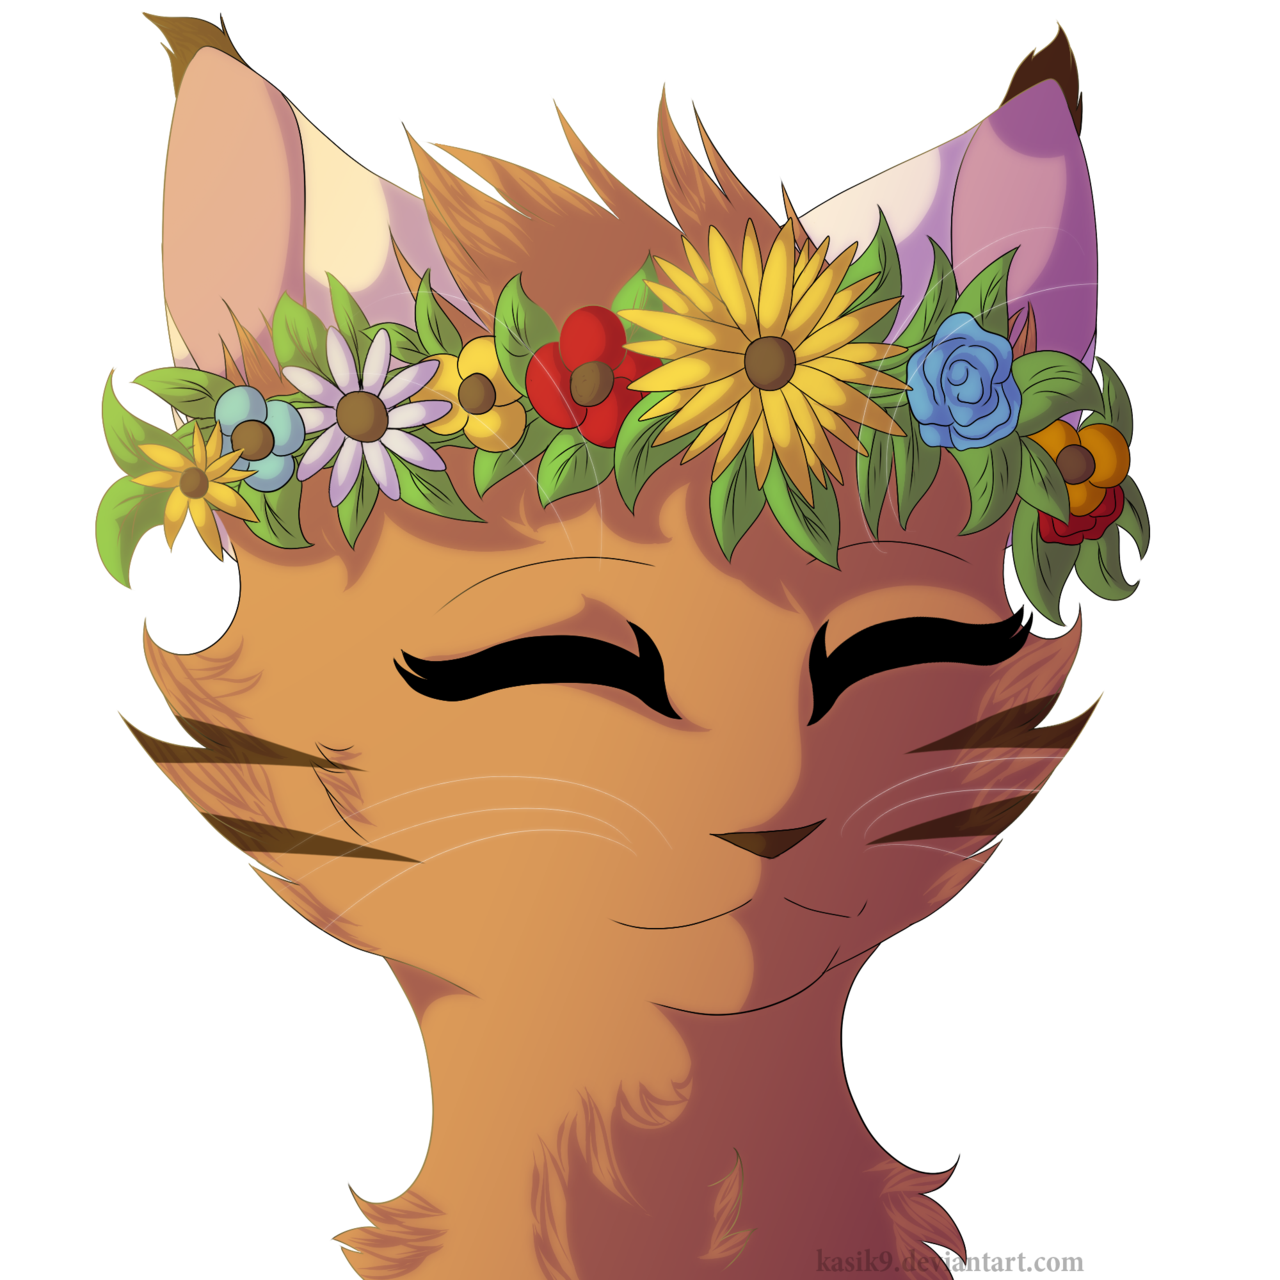 Animal jam flower crown clipart clip art transparent stock Image - Flower crowns are pretty by kasik9-d8w38lb.png | Animal Jam ... clip art transparent stock